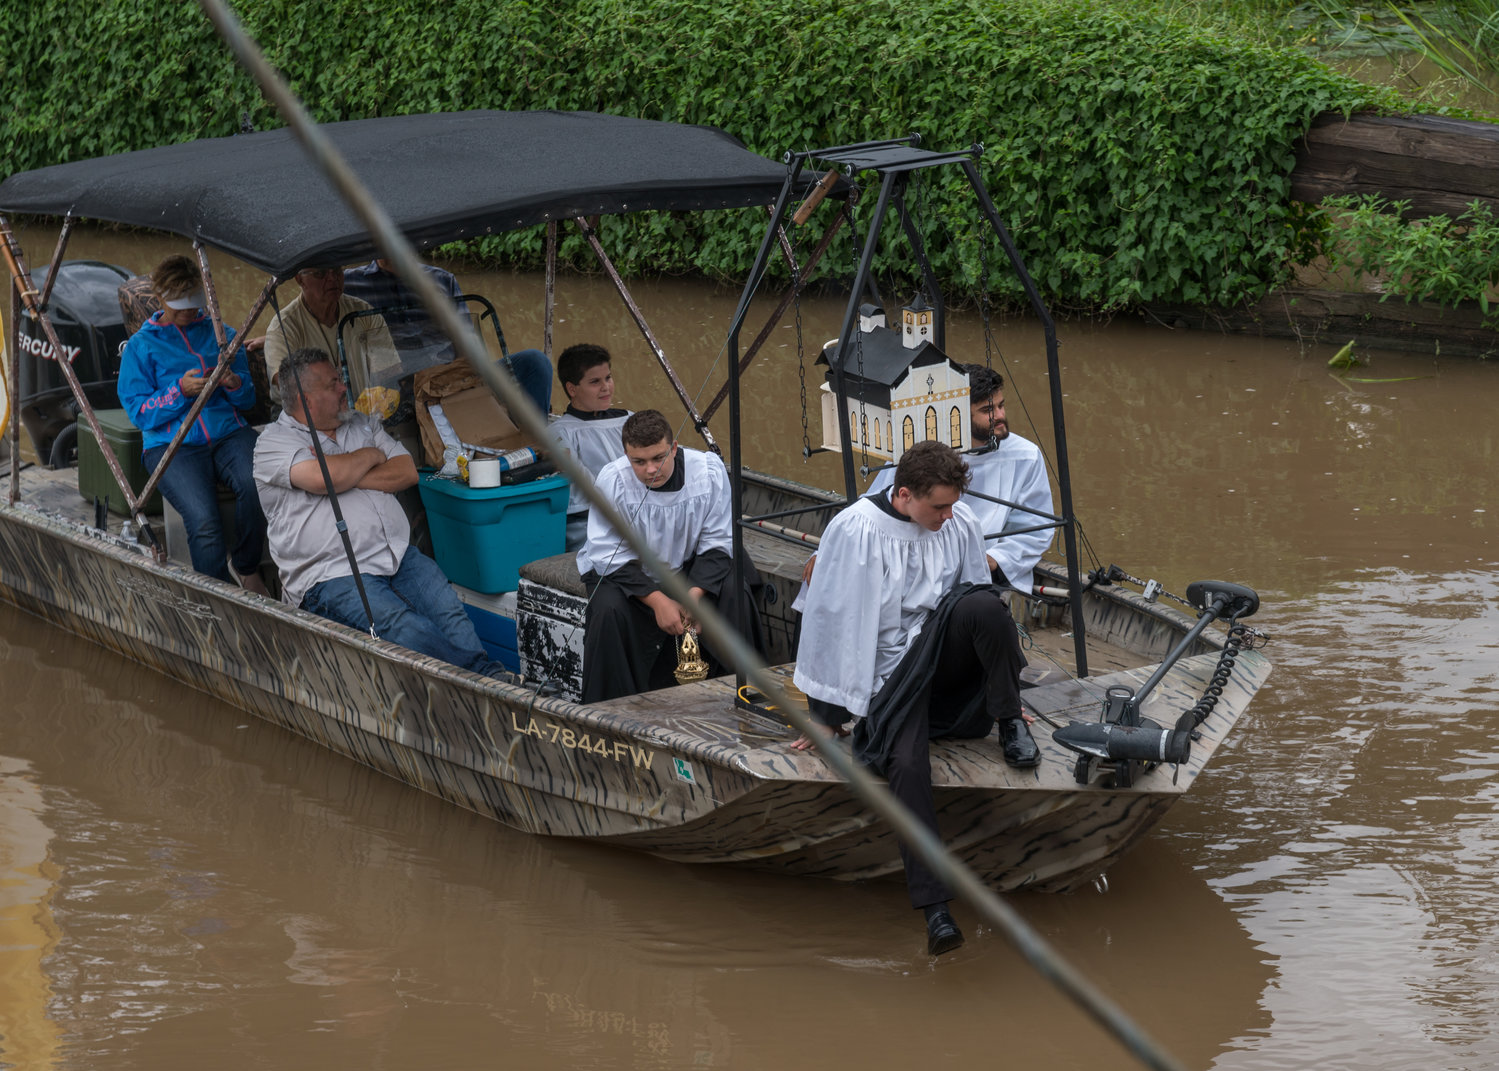 A boat containing incense arrives in St. Martinville, La., during the Aug. 15, 2017, Fete-Dieu du Teche procession. The Lafayette Diocese will hold its annual 38-mile eucharistic boat procession Aug. 15, 2019, celebrating the feast of the Assumption and 254th anniversary of arrival of French-Canadian immigrants who brought the Catholic faith to Acadiana.